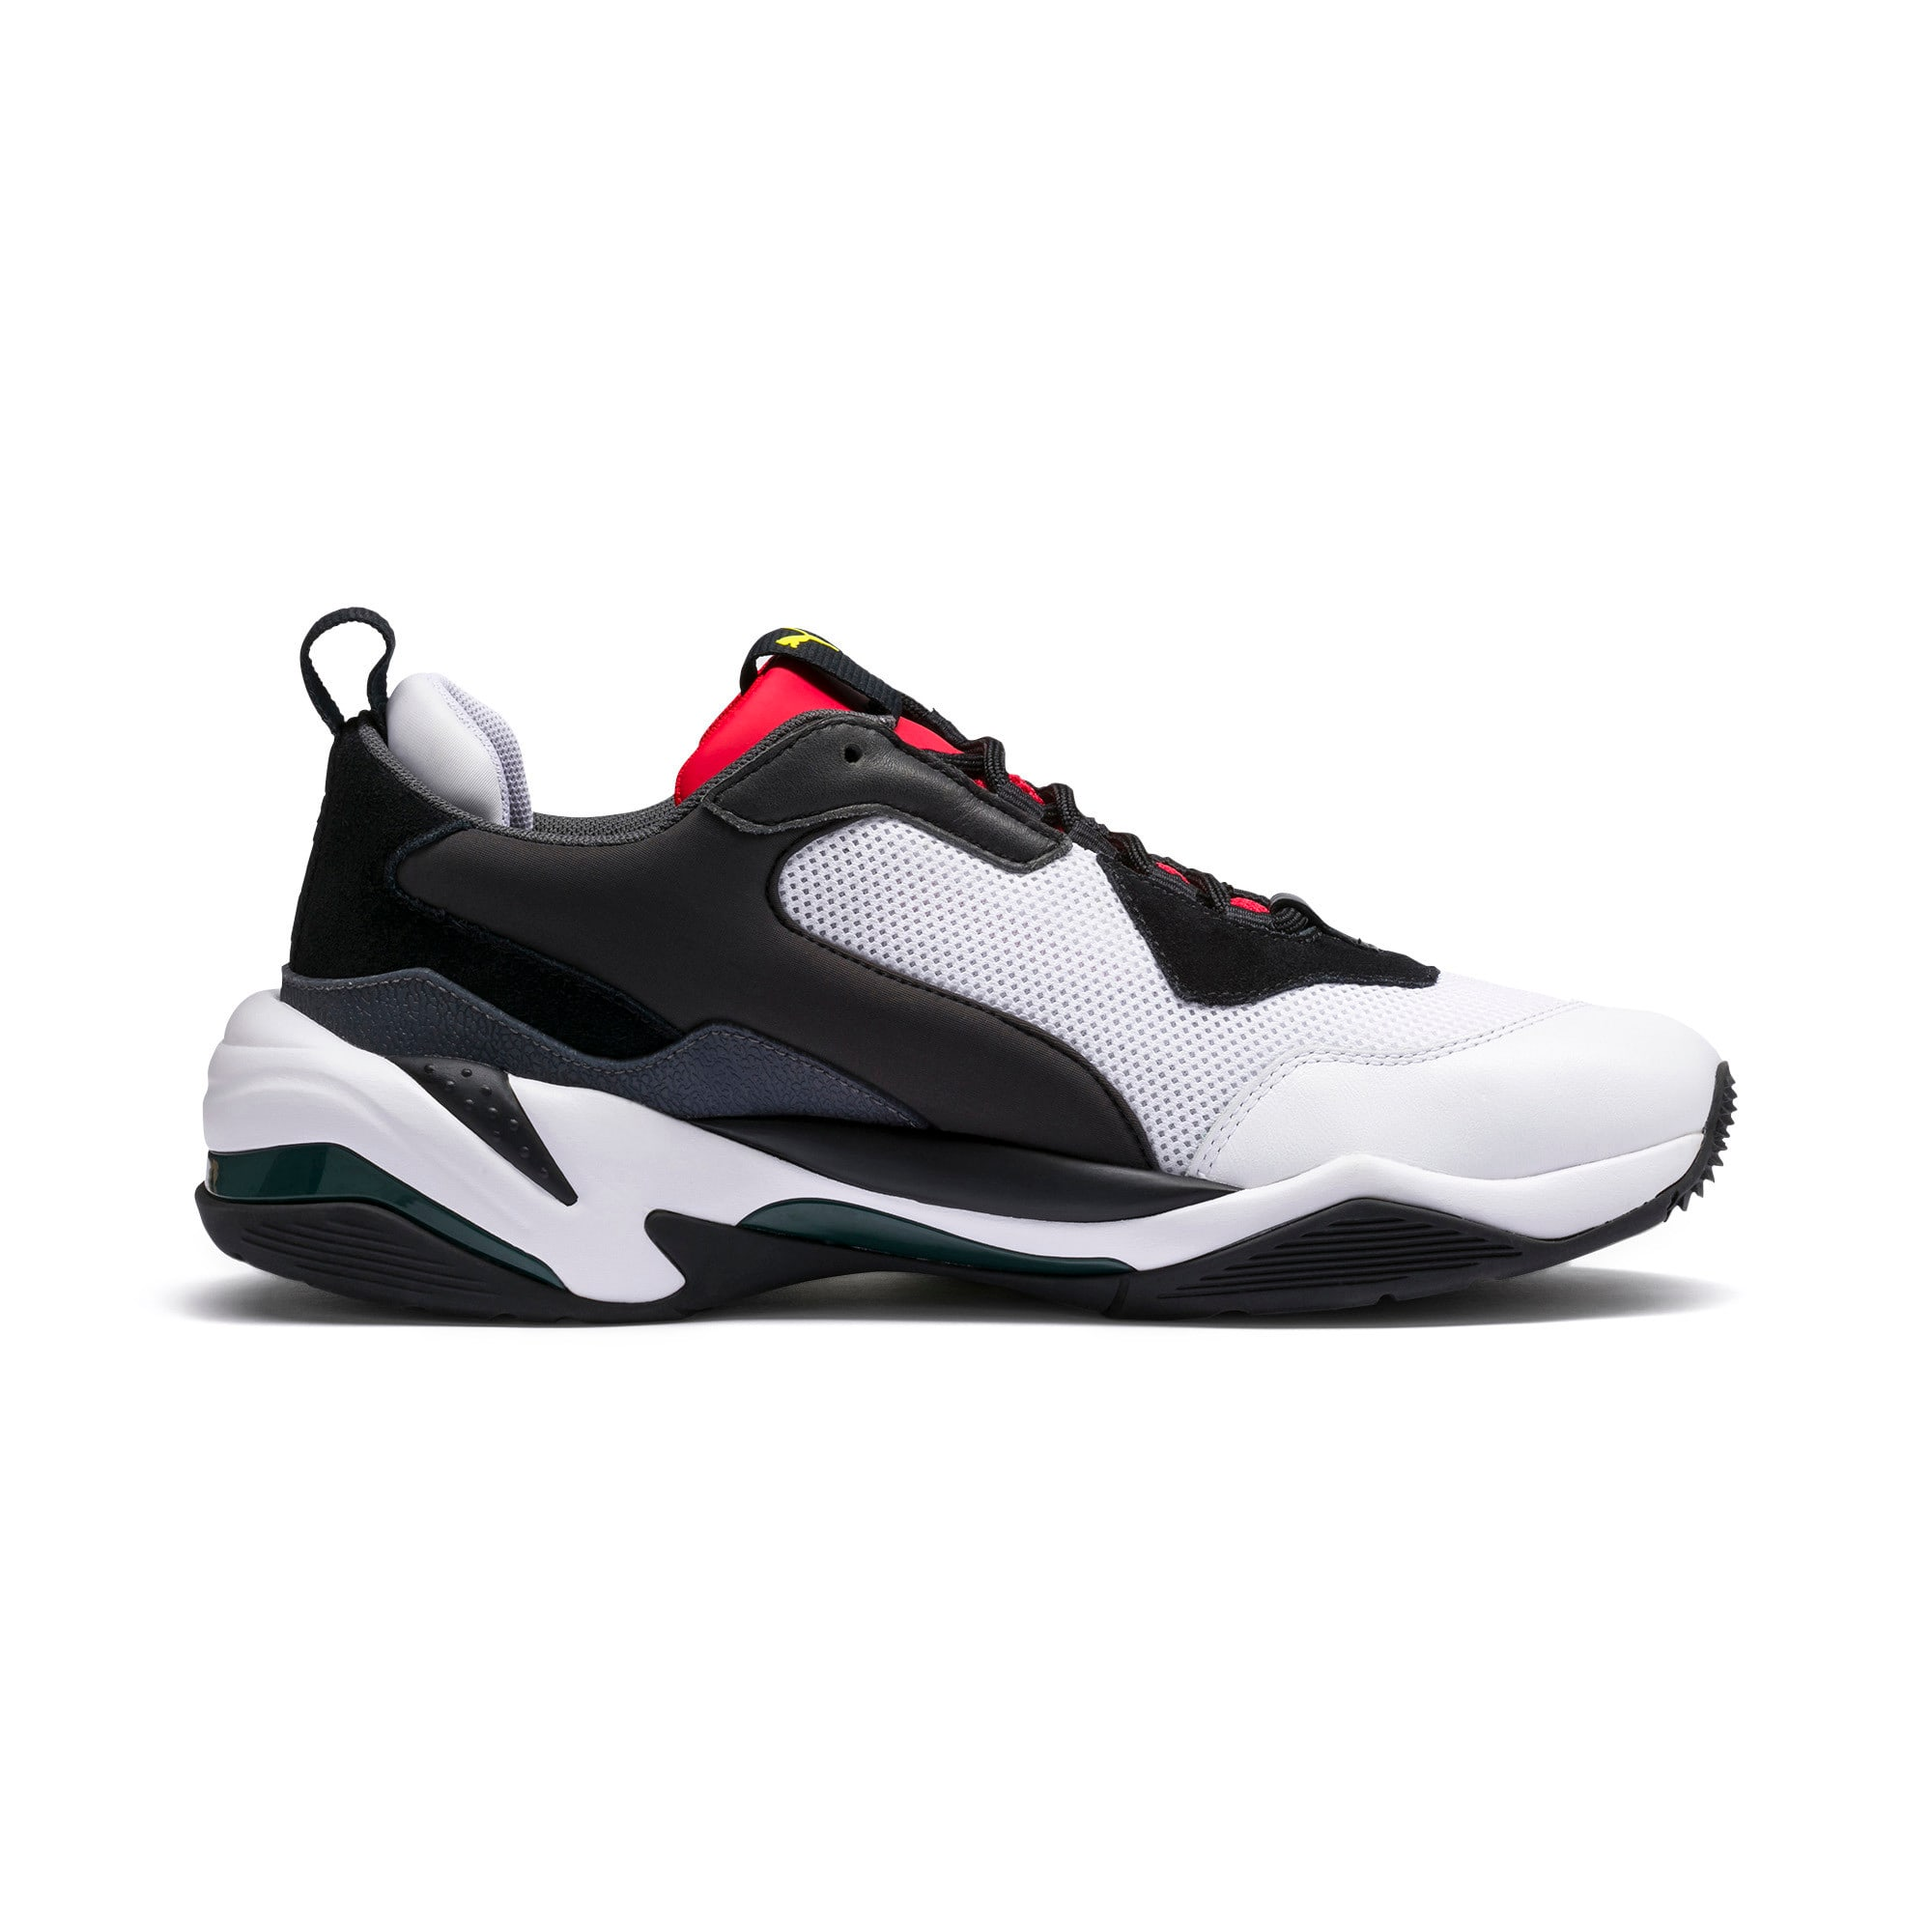 Thumbnail 5 of Thunder Spectra Trainers, Puma Black-High Risk Red, medium